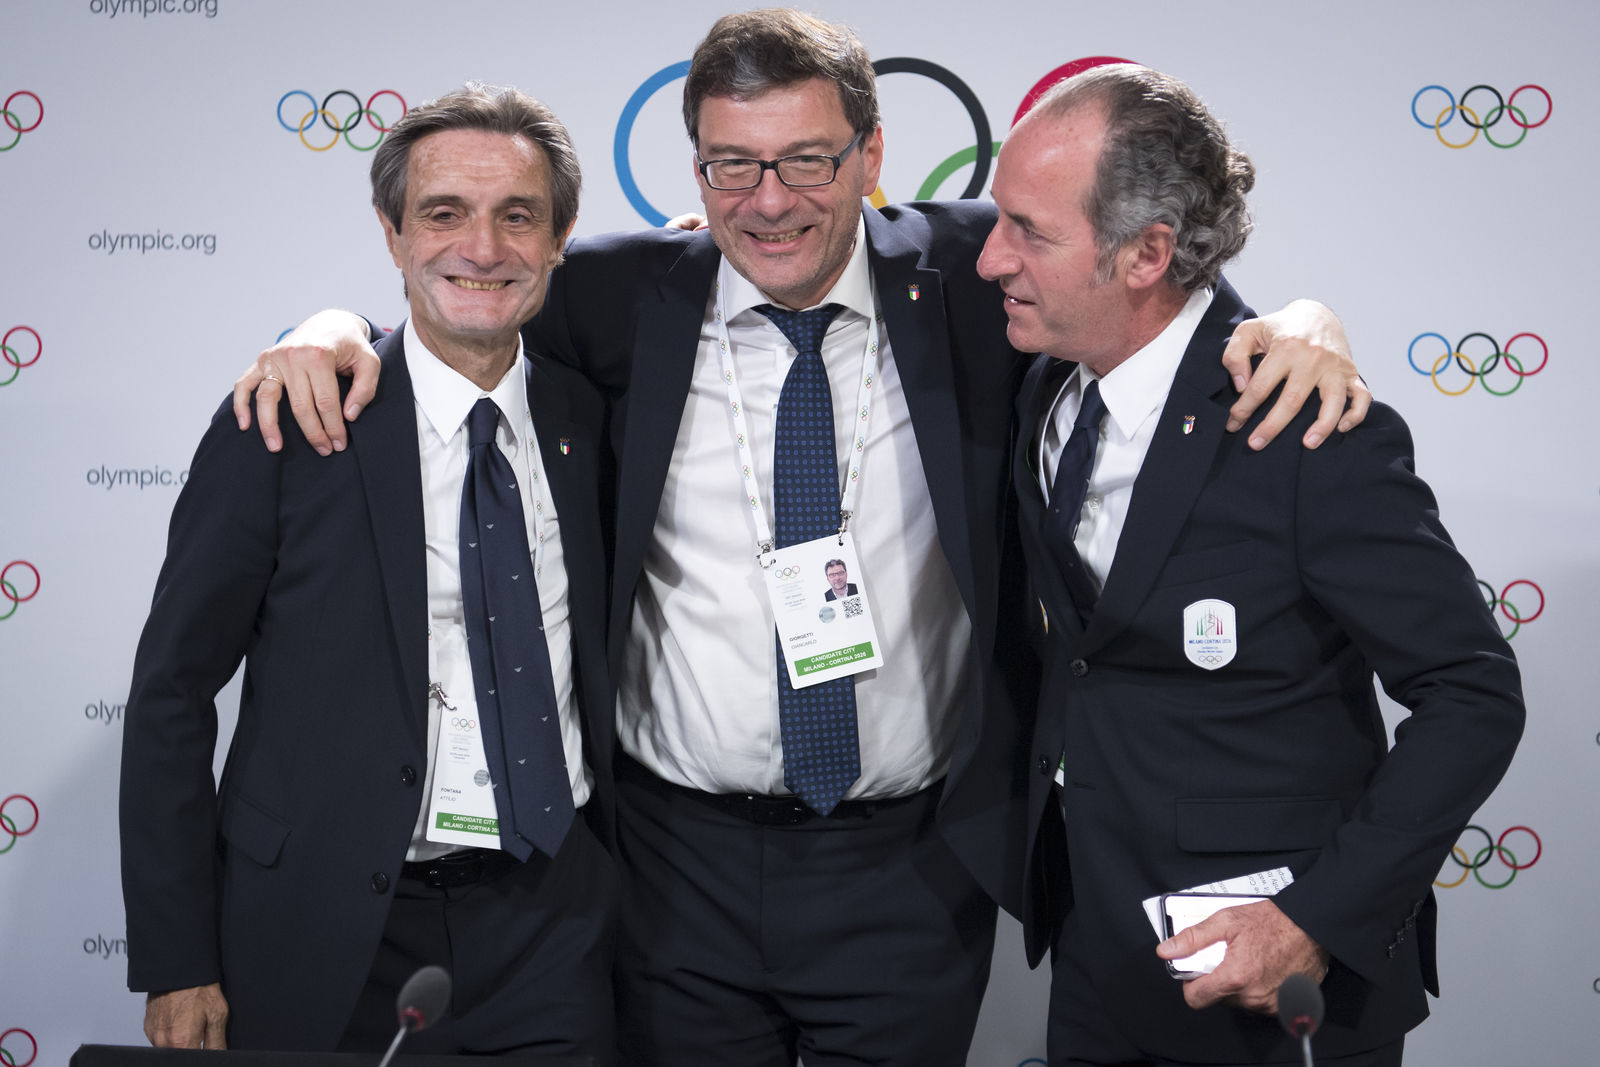 From left, Italy's Lombardy region President Attilio Fontana, Italy's Under Secretary of State Giancarlo Giorgetti and Italy's Veneto Region President Luca Zaia pose after Milan-Cortina won the bid to host the 2026 Winter Olympic Games, during the first day of the 134th Session of the International Olympic Committee (IOC), at the SwissTech Convention Centre, in Lausanne, Switzerland, Monday, June 24, 2019.(Laurent Gillieron/Keystone via AP)